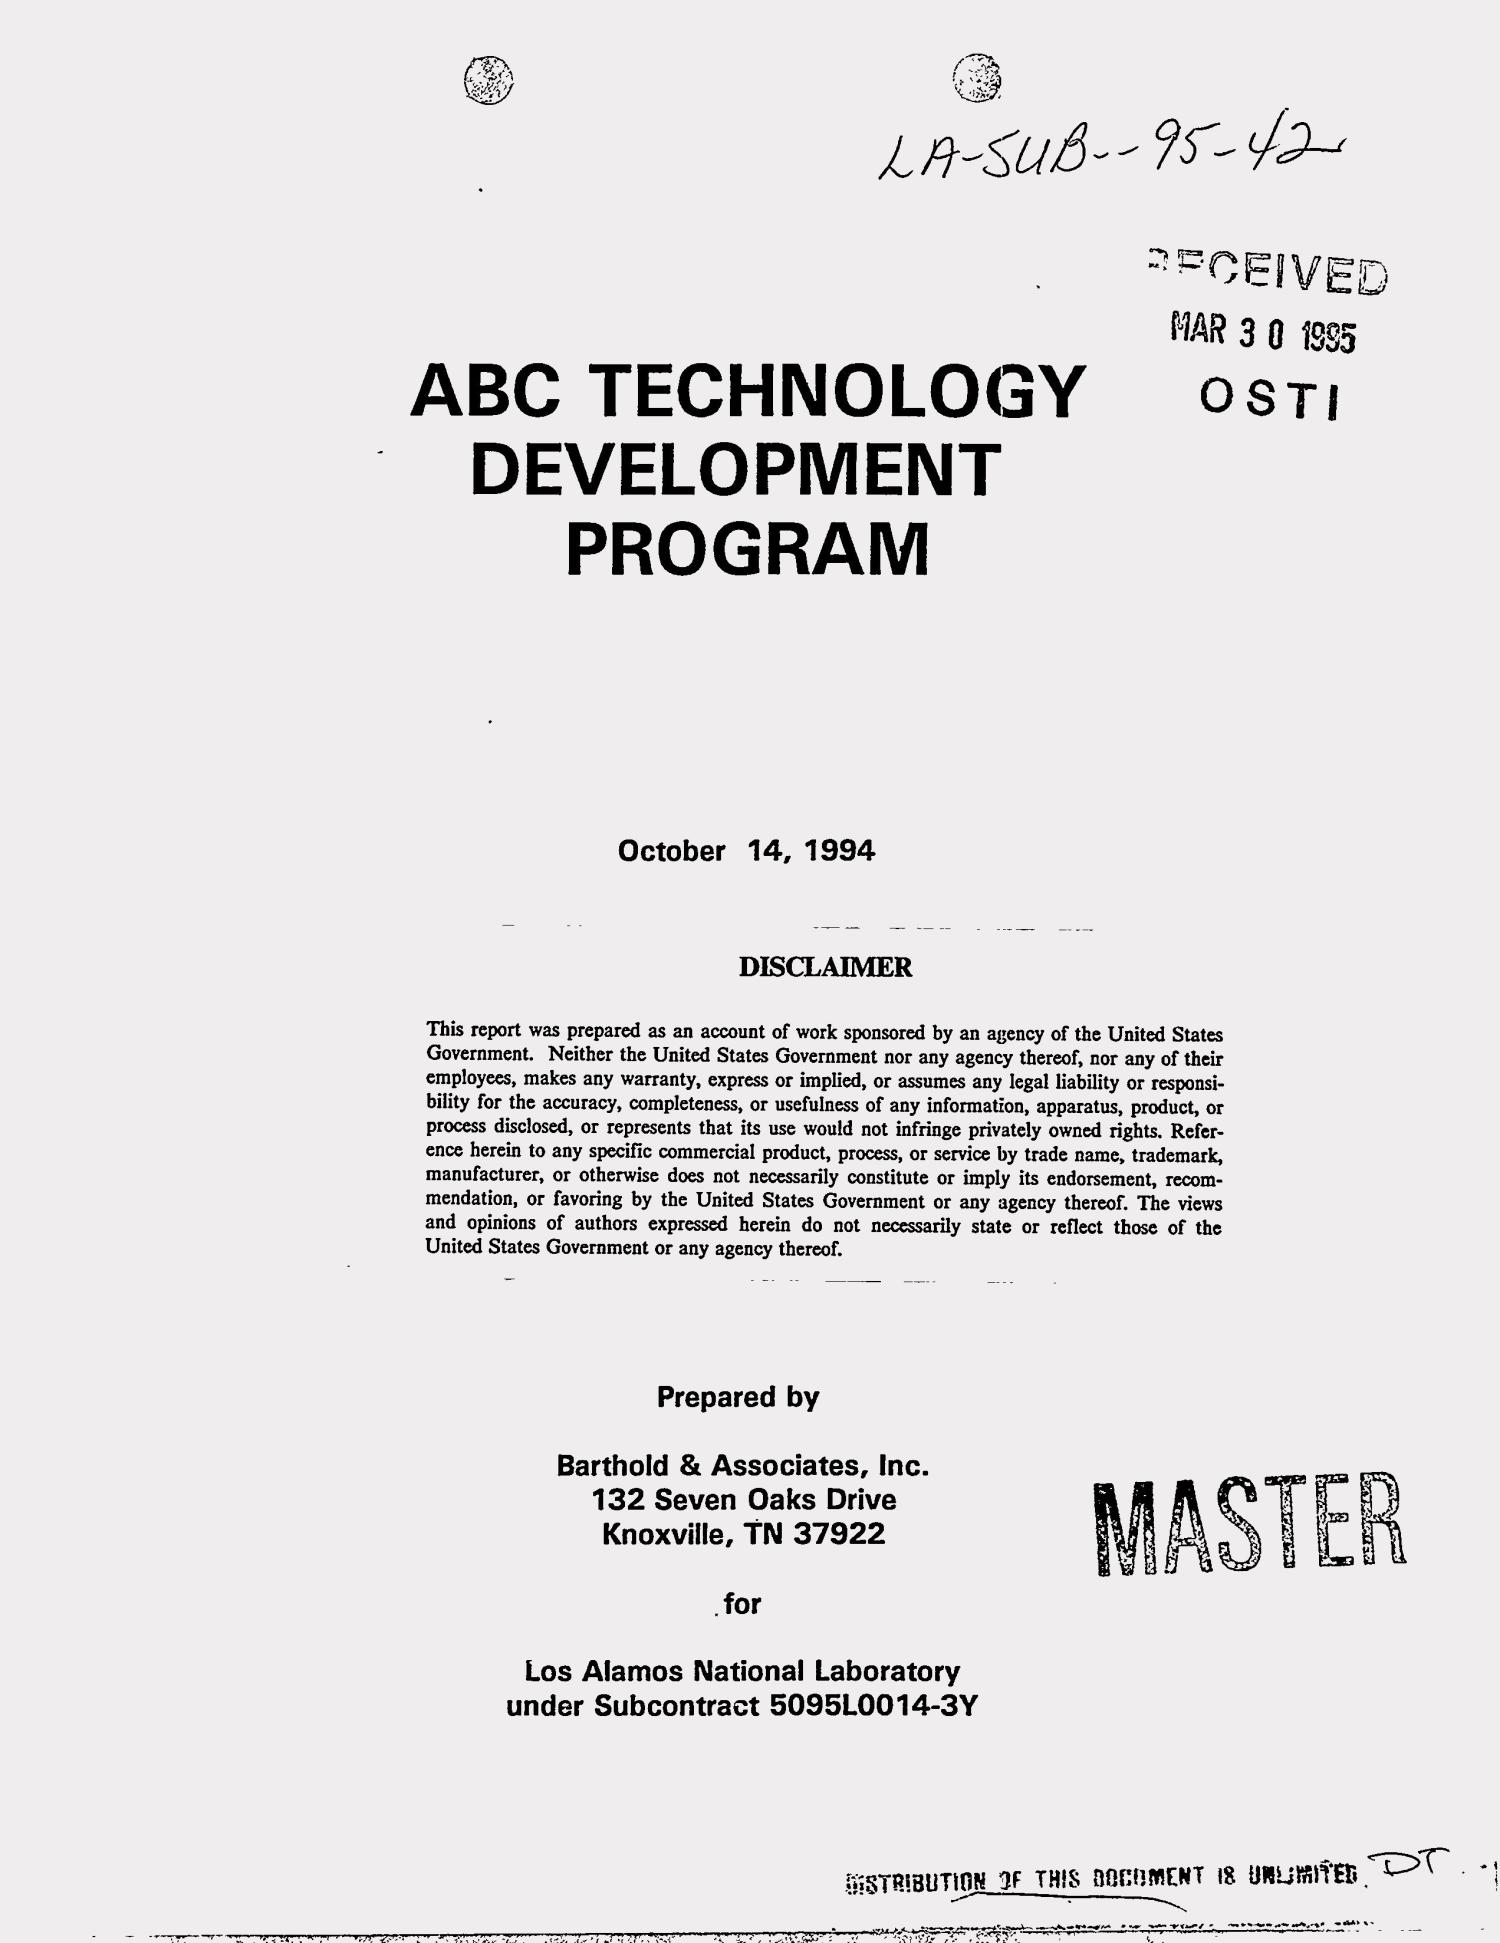 ABC Technology Development Program                                                                                                      [Sequence #]: 1 of 104